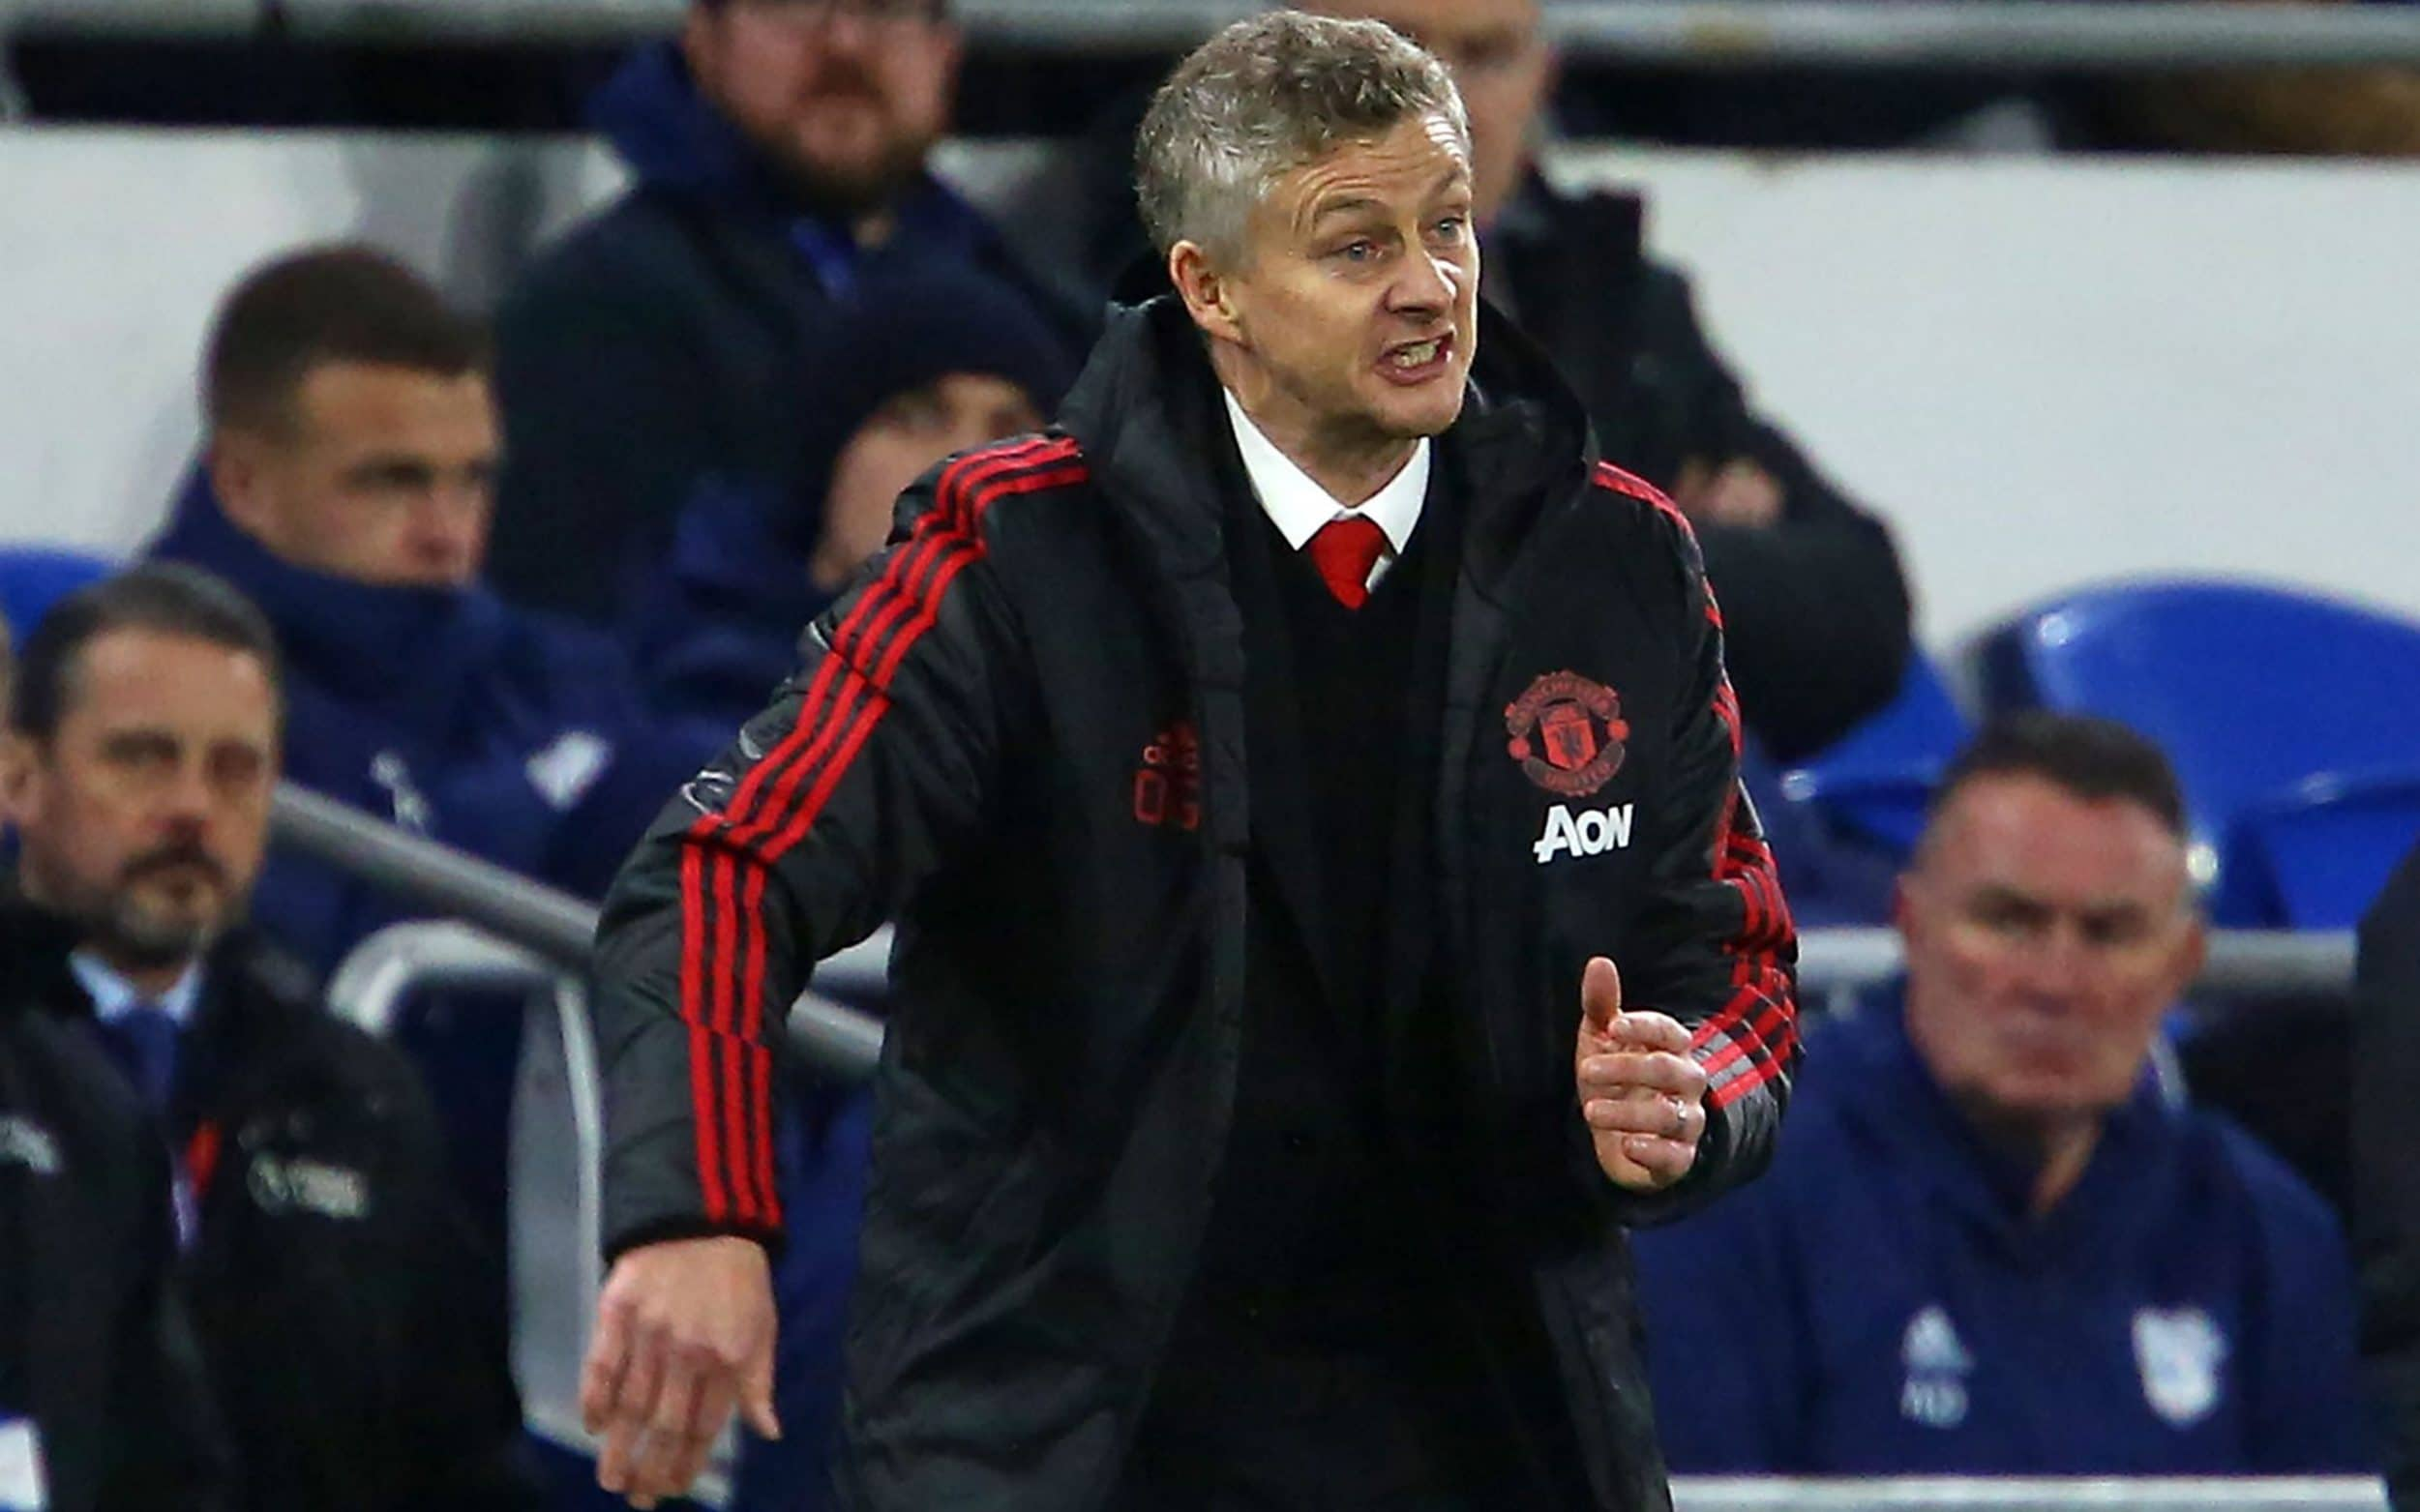 Ole Gunnar Solskjaer gestures to the players